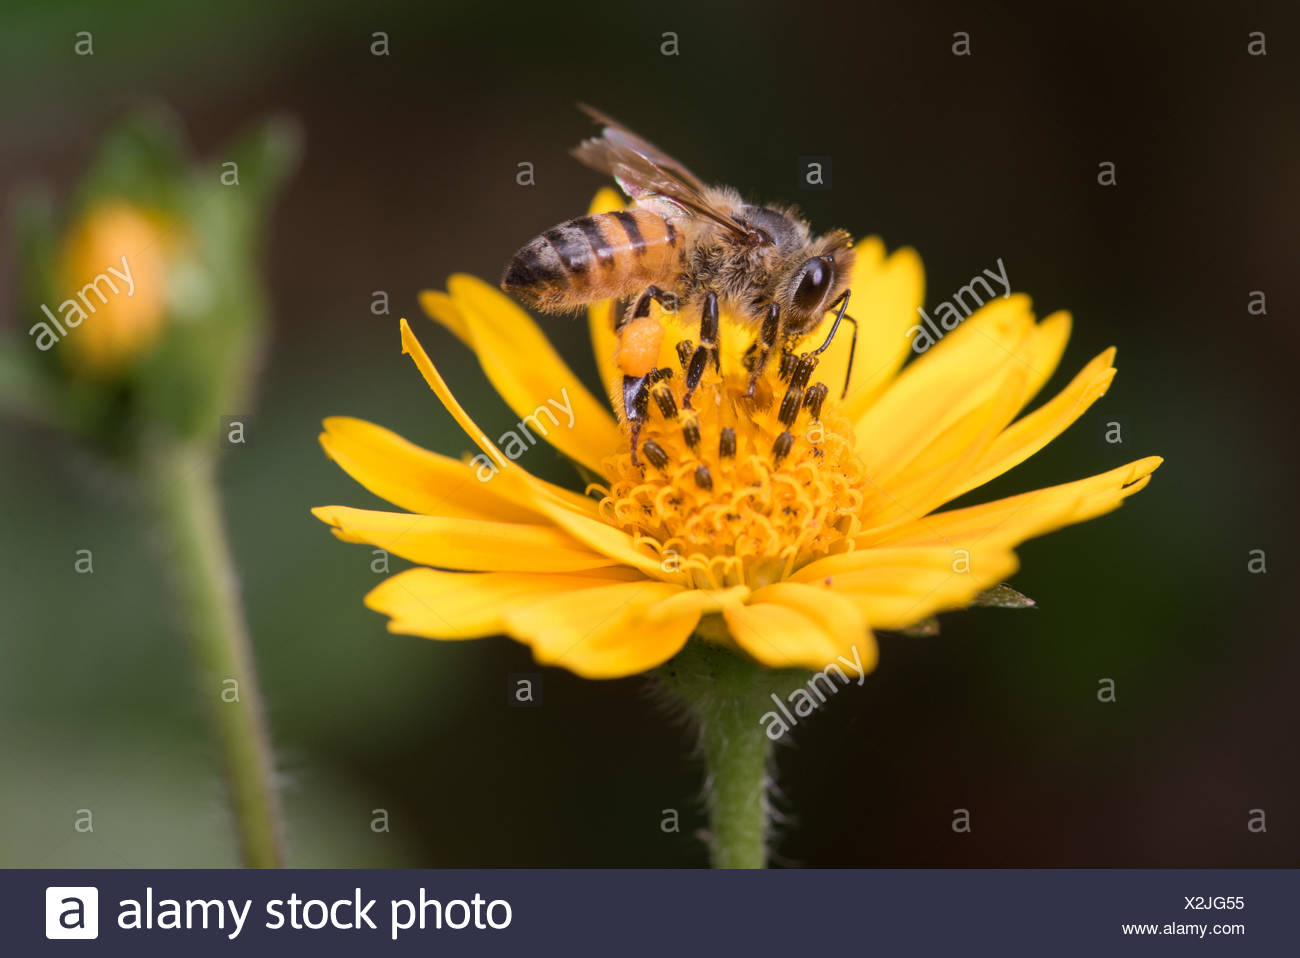 African Honey Bee (Apis mellifera scutellata) collecting pollen from yellow flower, Malawi, Blantyre - Stock Image